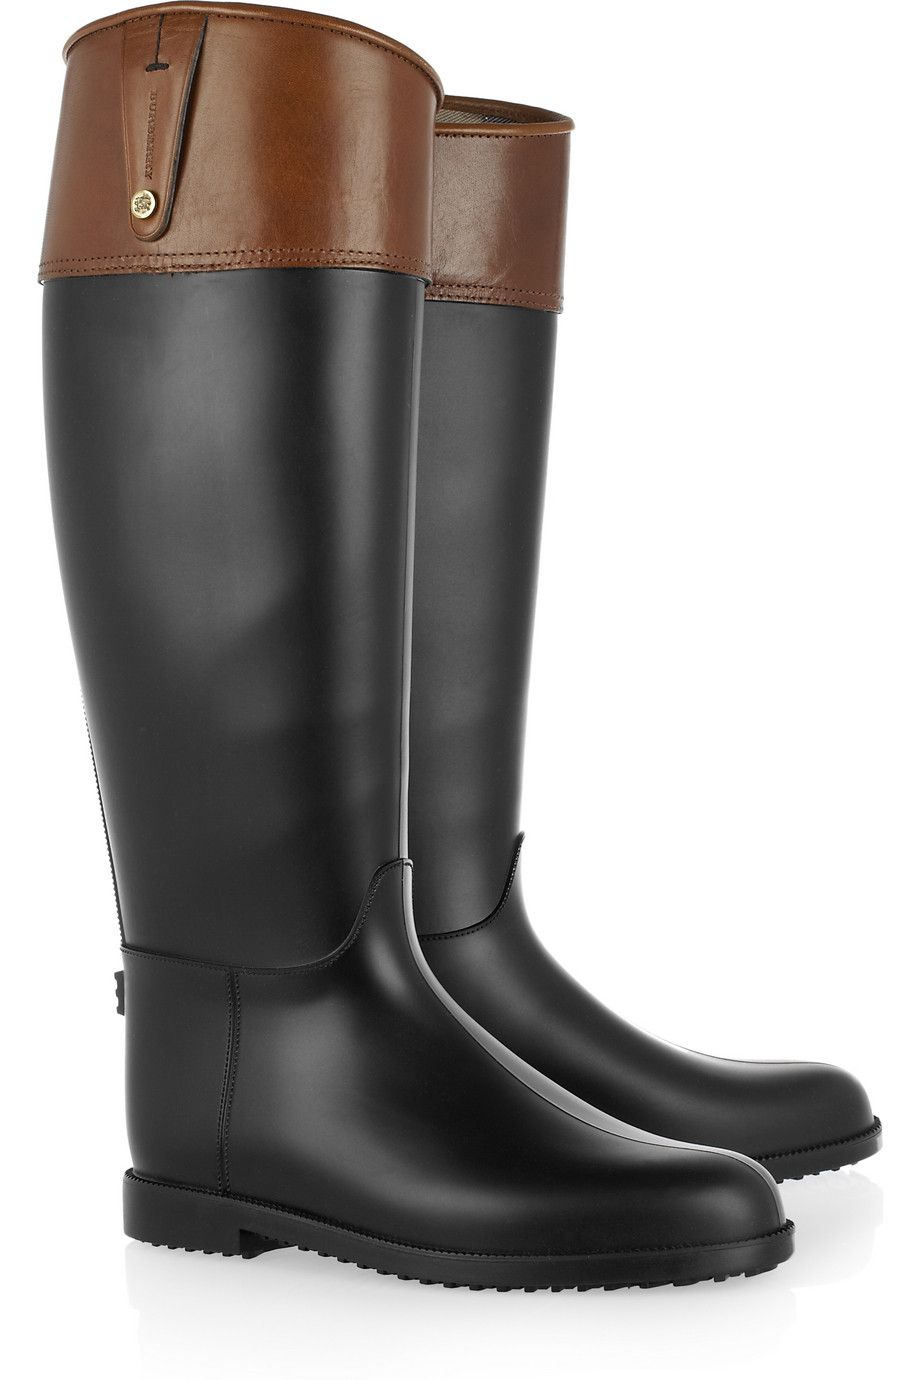 01f1d4bcd The most beautiful rain boot that doesn t look like a rain boot - Burberry  Leather Top Rubber Wellington Boots in Tan